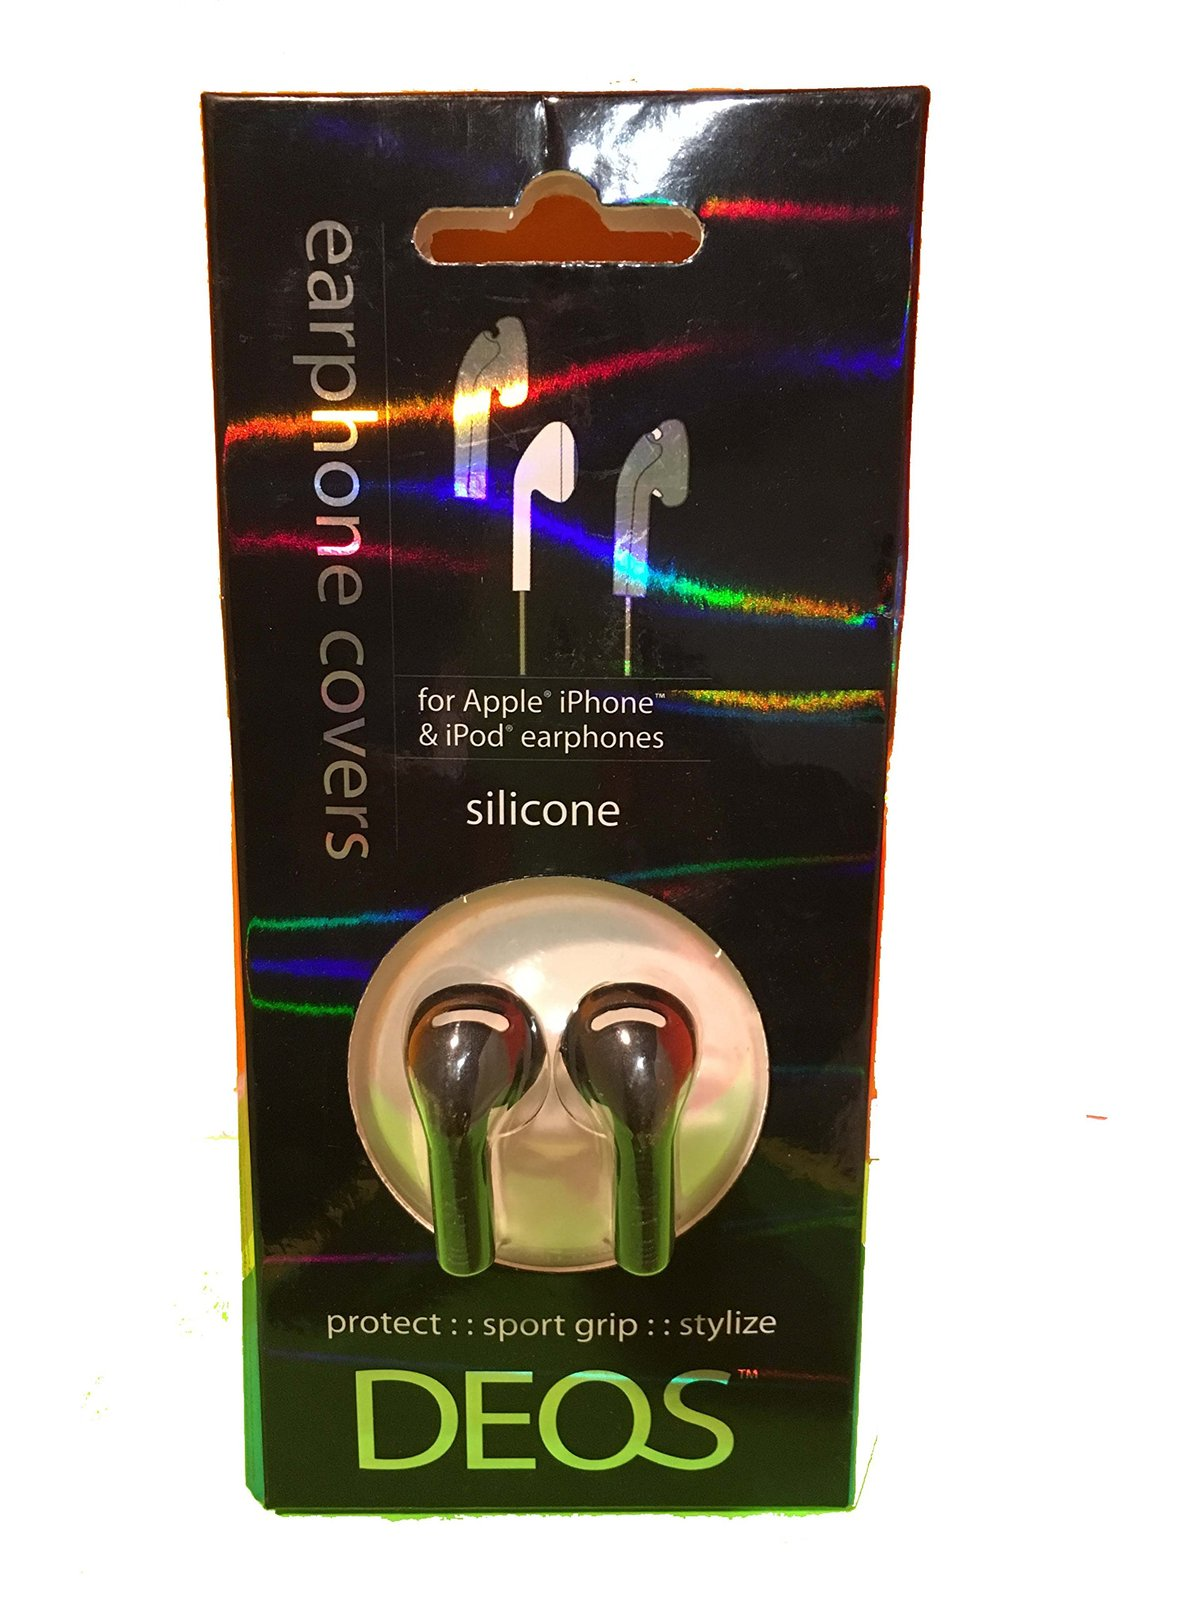 DEOS Silicone Earphone Covers For Apple iPhone & iPod Earphones